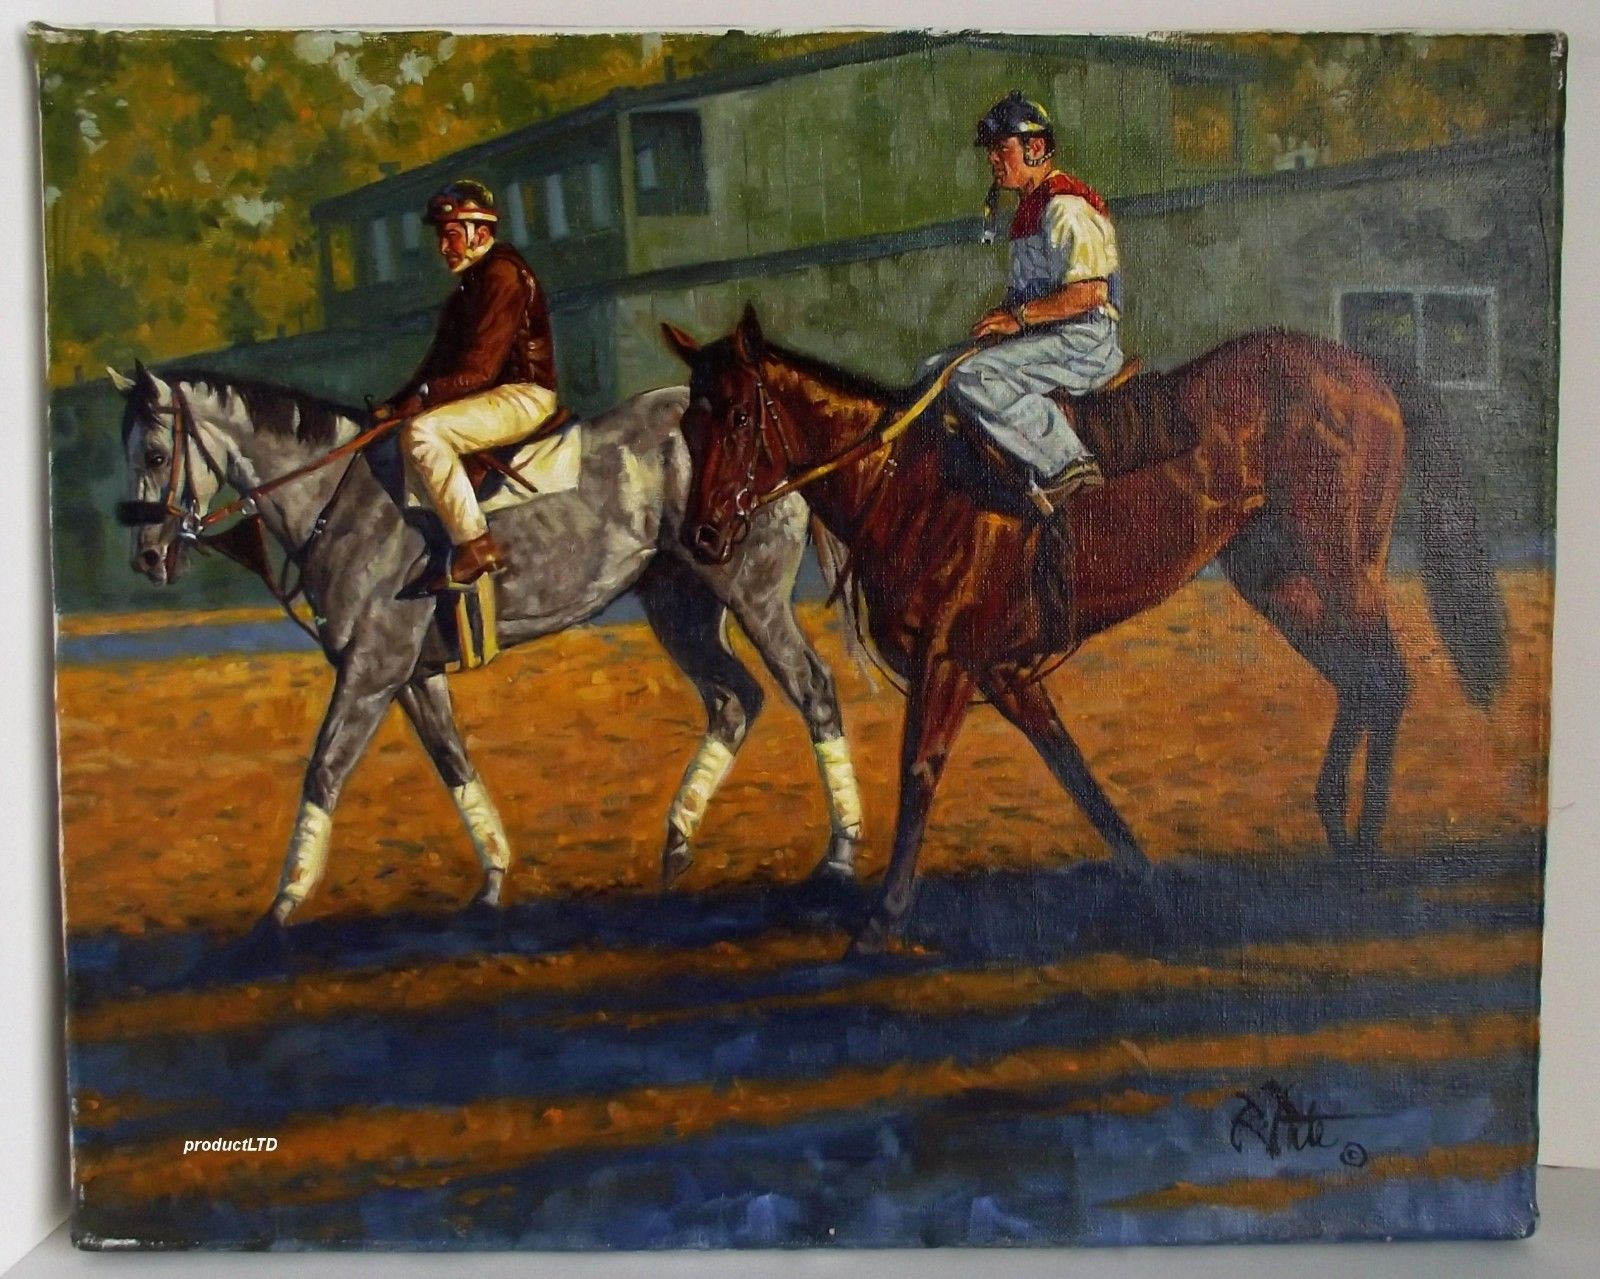 Robert Tate Early Morning Workout Oil on Canvas 16x20 Horse Racing | eBay